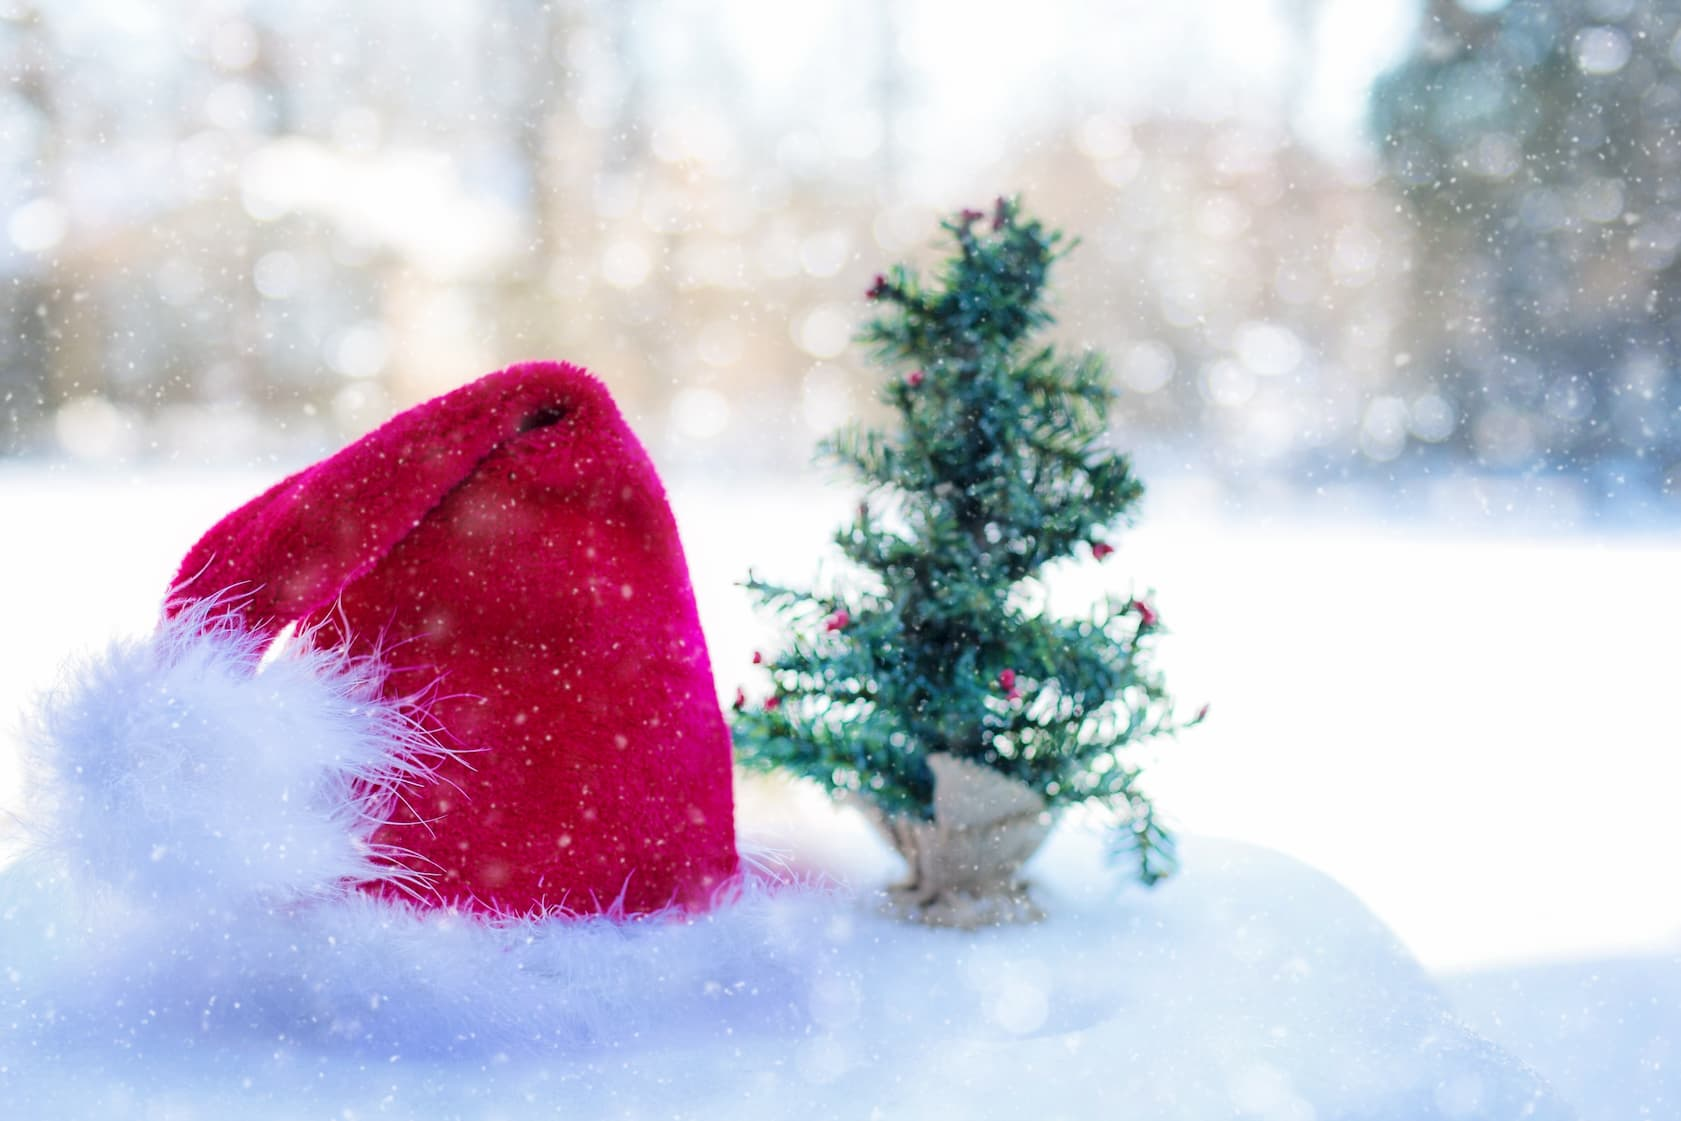 Santa hat and small Christmas in a snowy setting